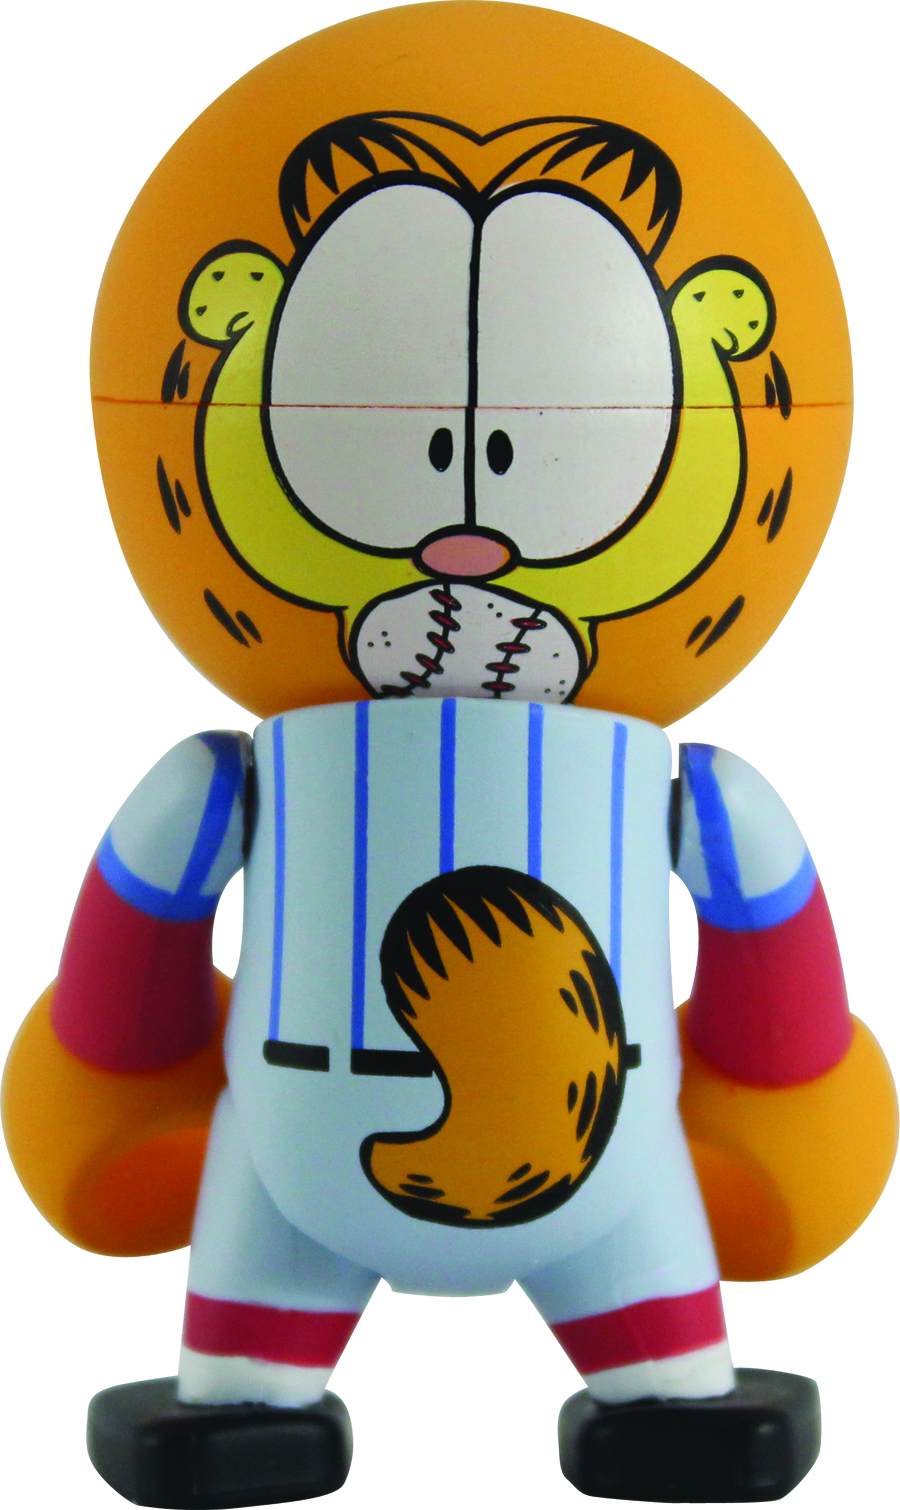 GARFIELD & FRIENDS BASEBALL PLAYER GARFIELD TREXI